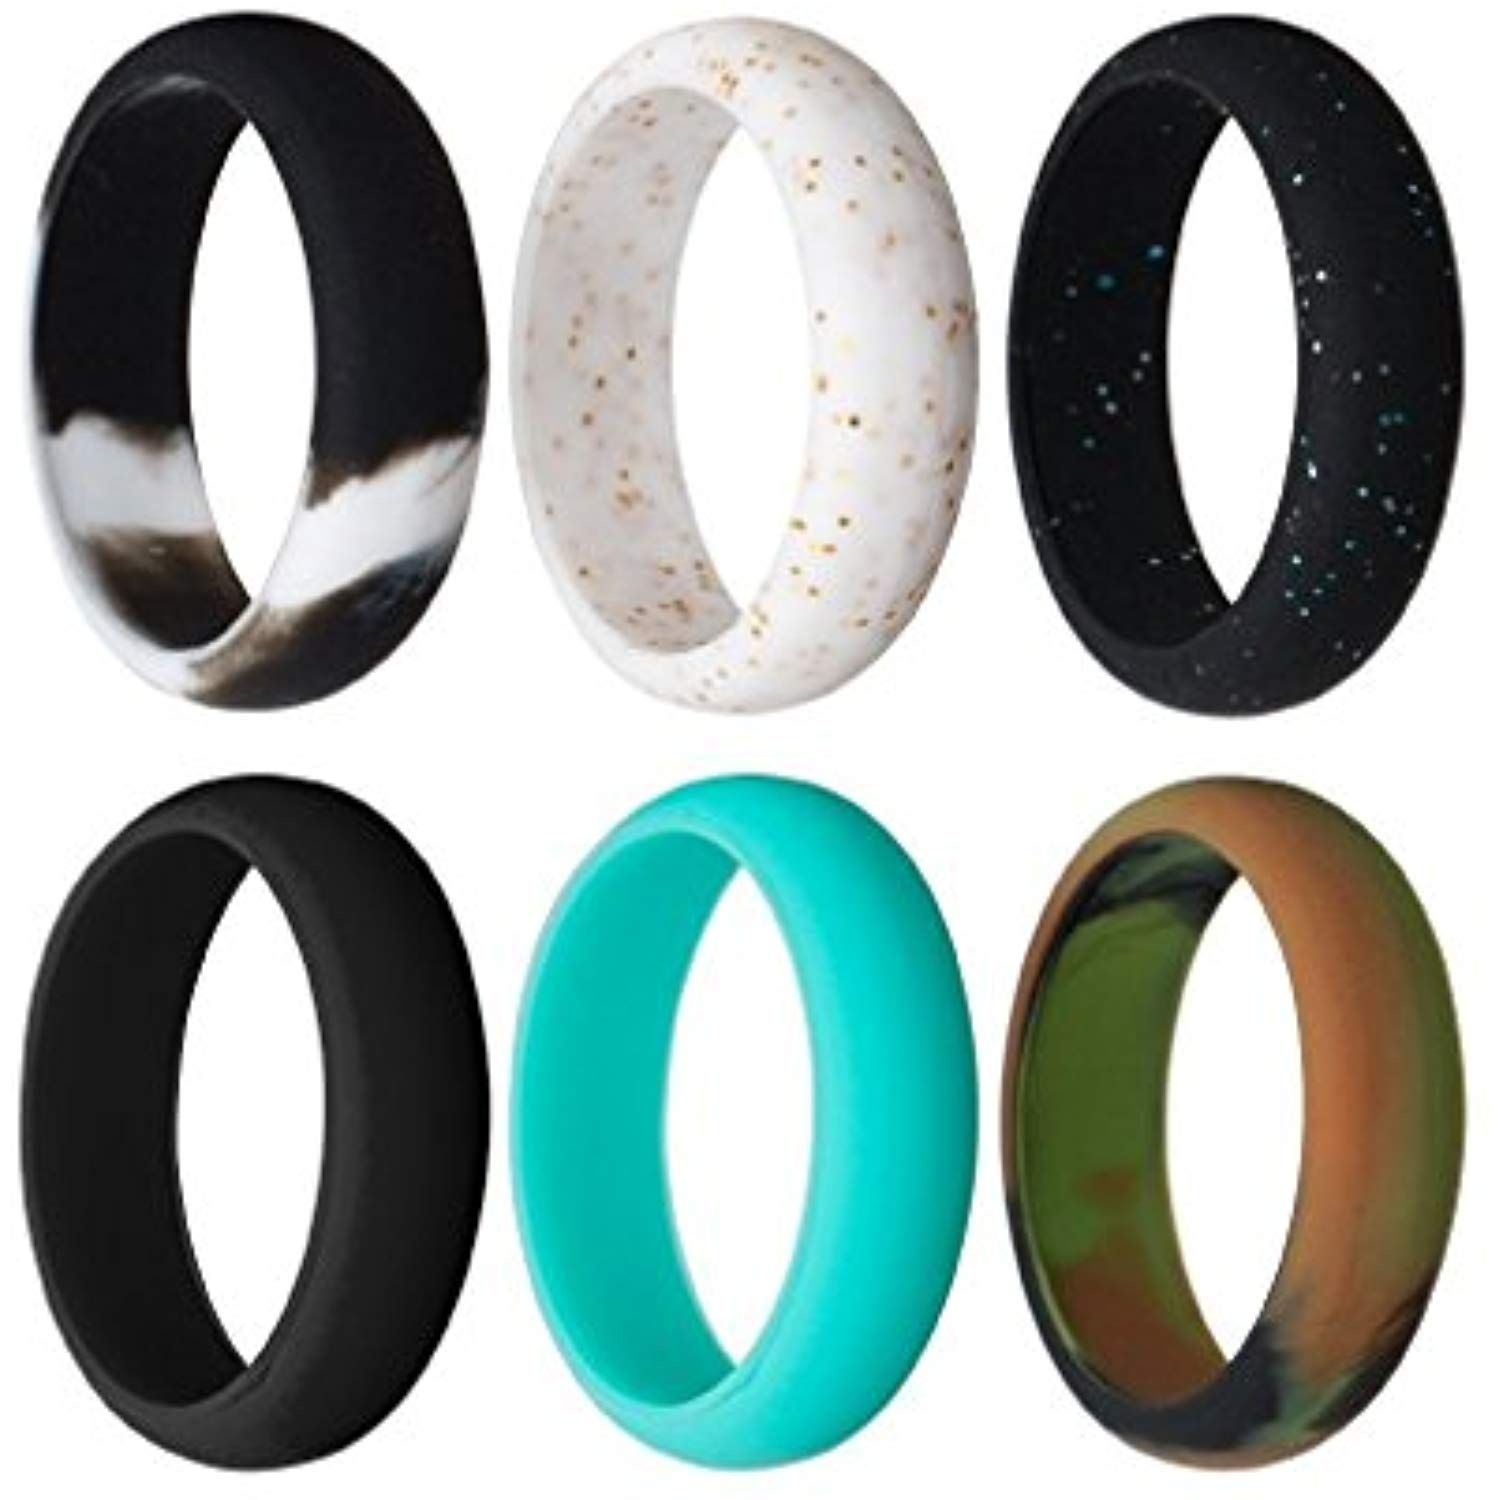 Rmylove Silicone Rings For Women Safe Wedding Band Yoga